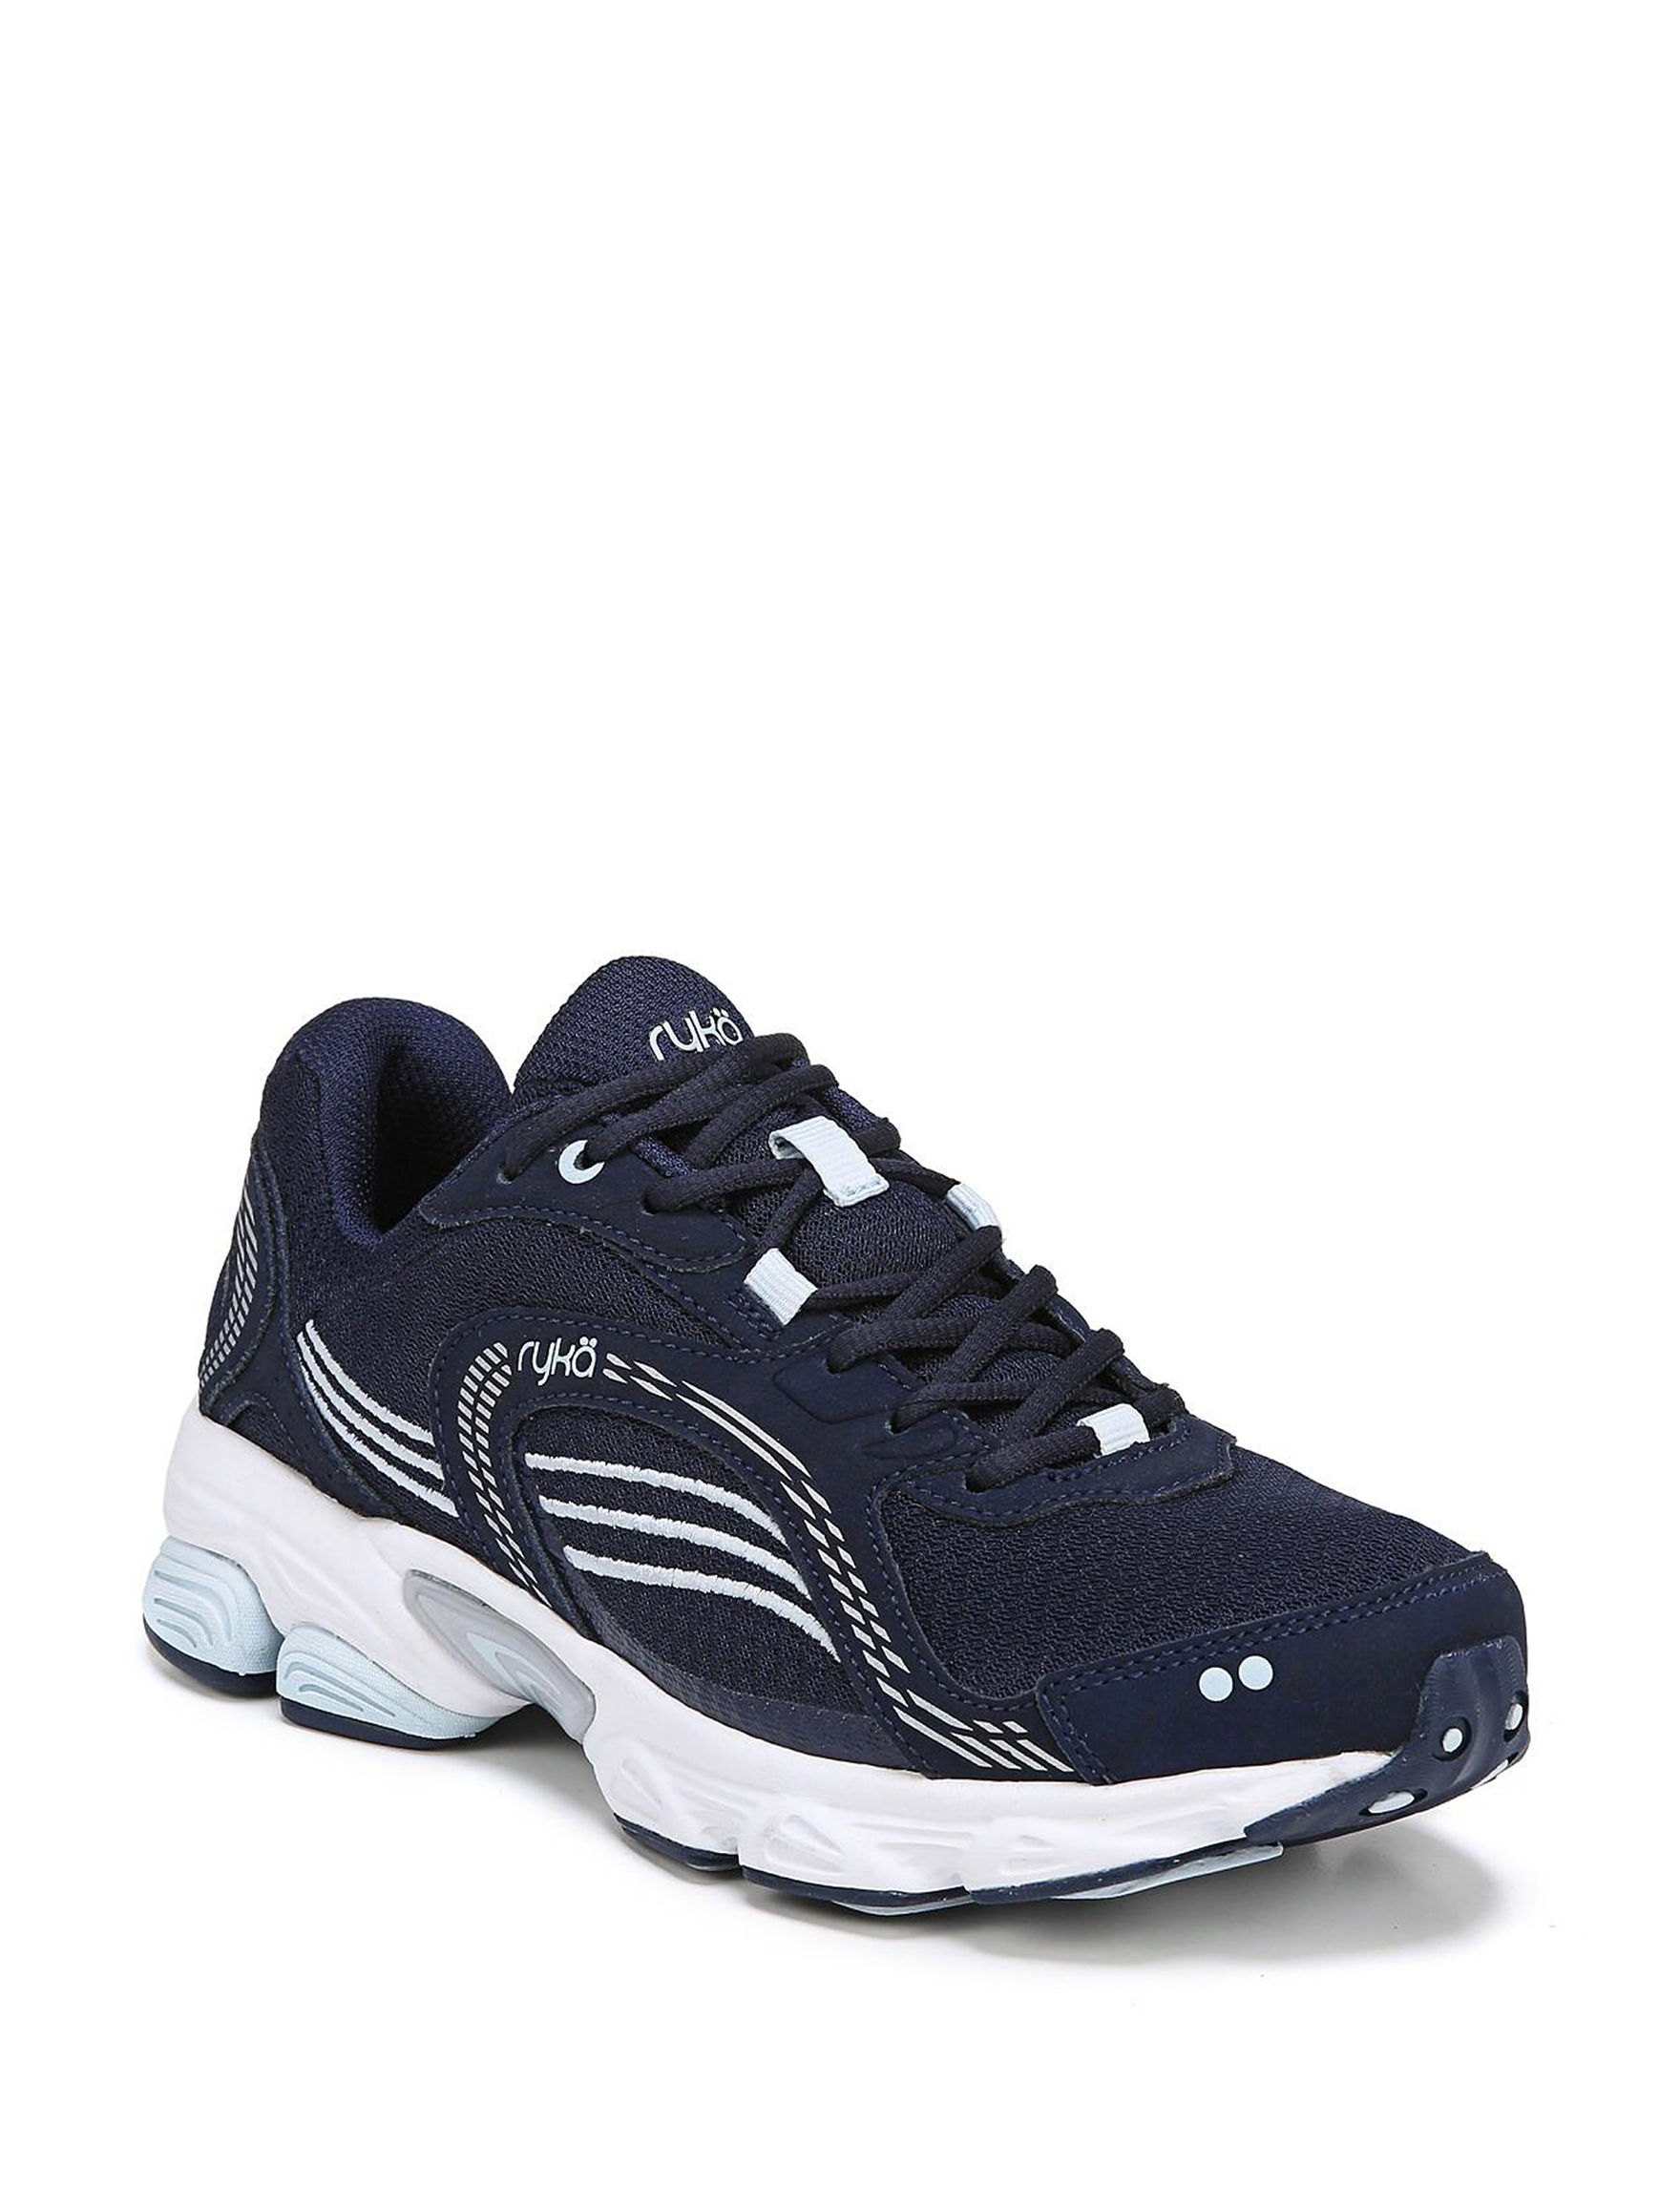 Ryka Navy Comfort Shoes